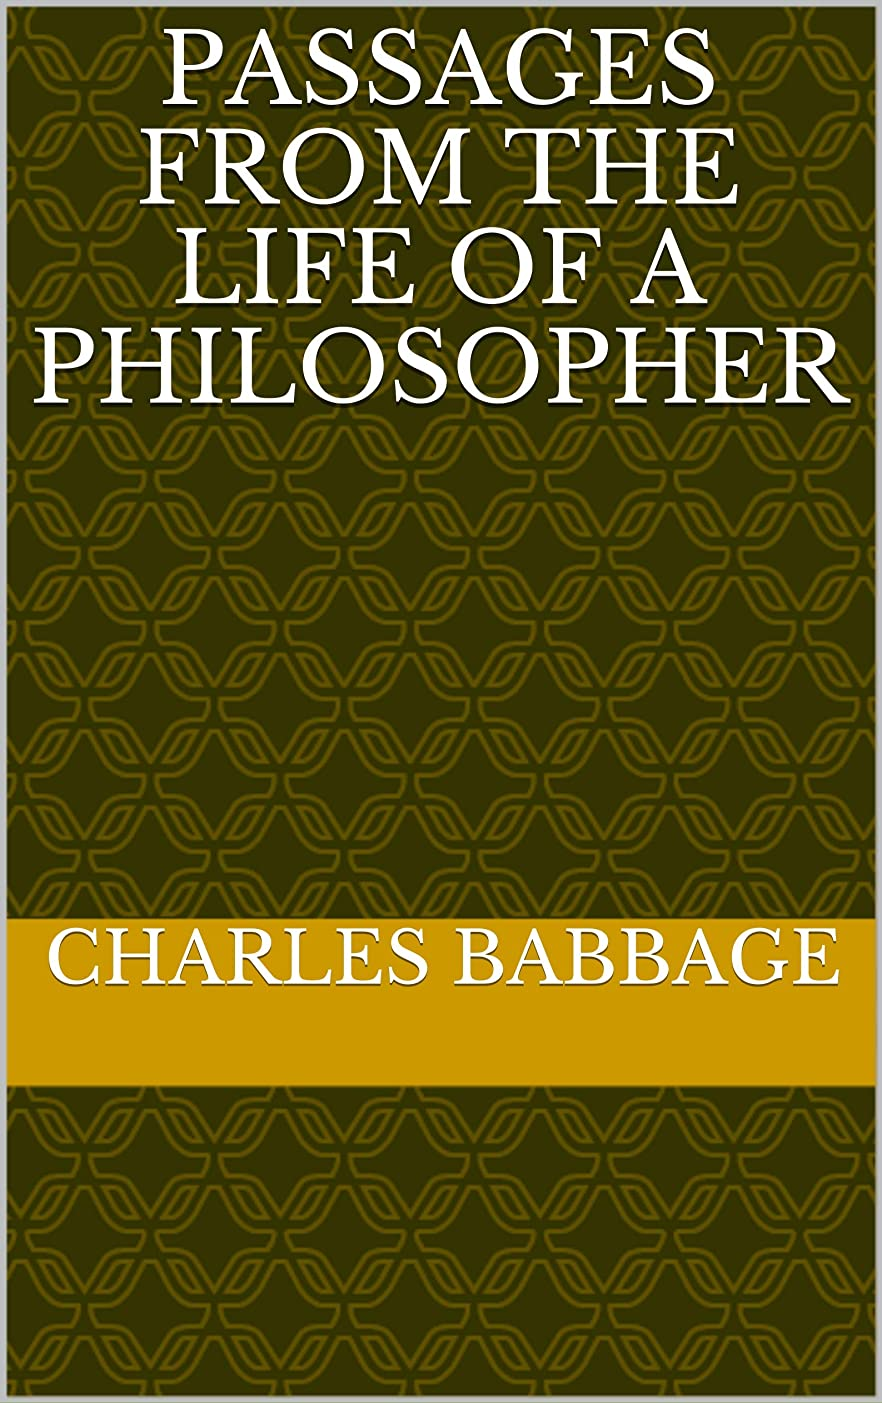 火曜日ニコチン追うPassages from the Life of a Philosopher (English Edition)